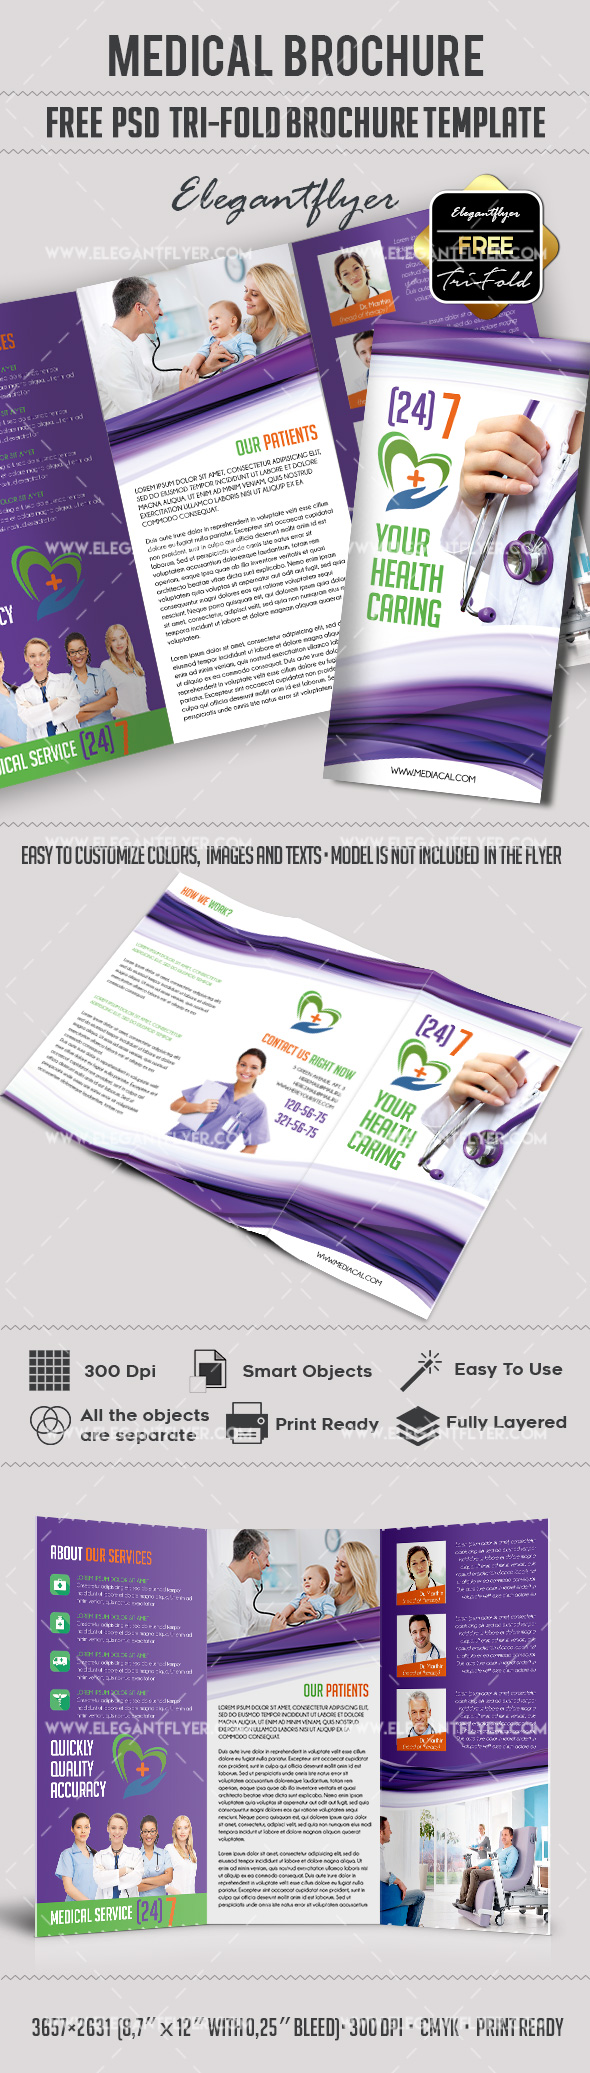 medical brochure template - medical free tri fold psd brochure template by